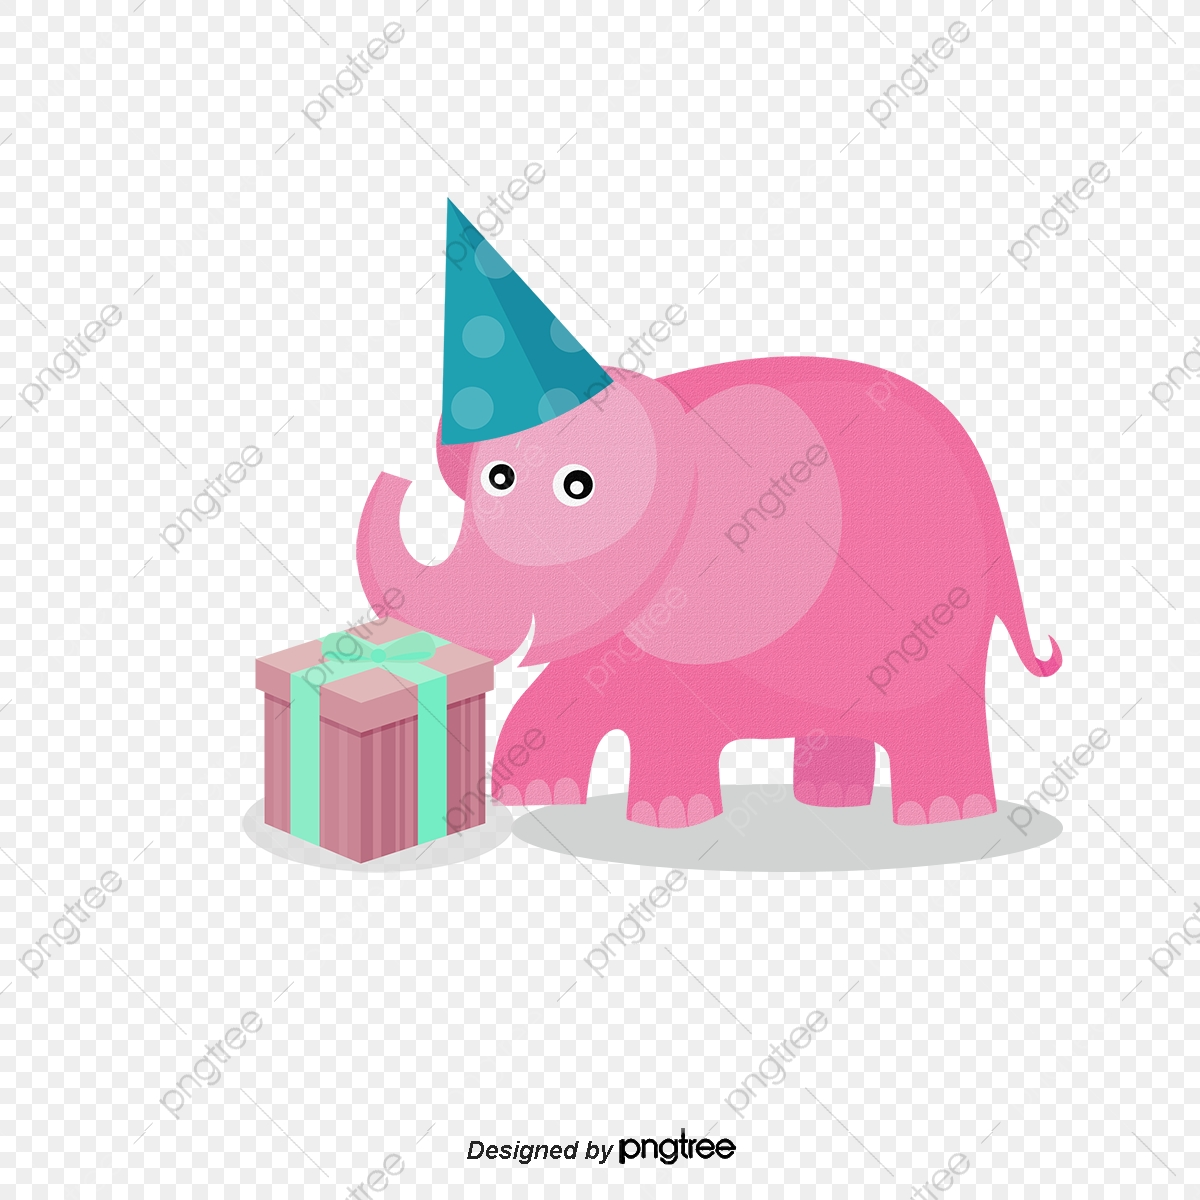 Cute Little Pink Elephant Elephant Clipart Cute Clipart Pink Elephant Png Transparent Clipart Image And Psd File For Free Download Pink elephant png cliparts, all these png images has no background, free & unlimited downloads. https pngtree com freepng cute little pink elephant 2484847 html